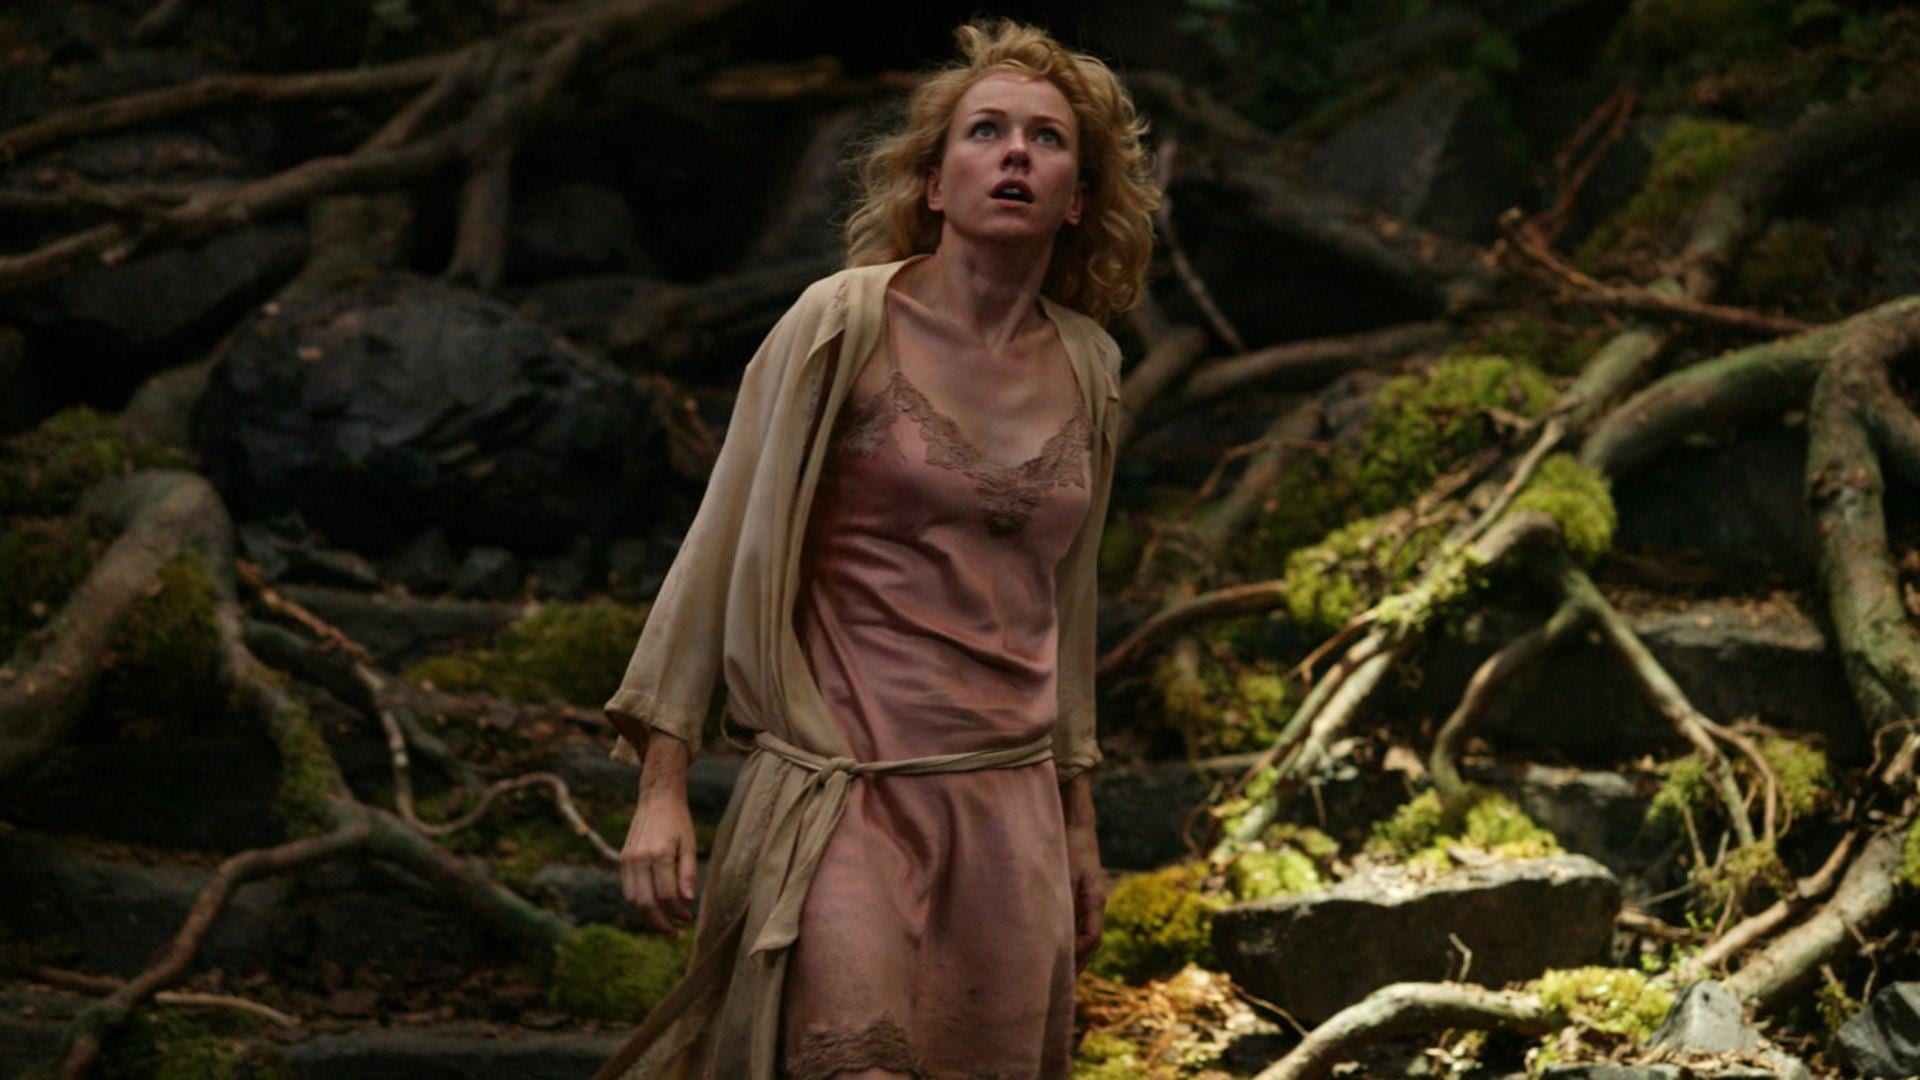 Naomi Watts steps into Fay Wray's iconic role as Ann Darrow in King Kong (2005)